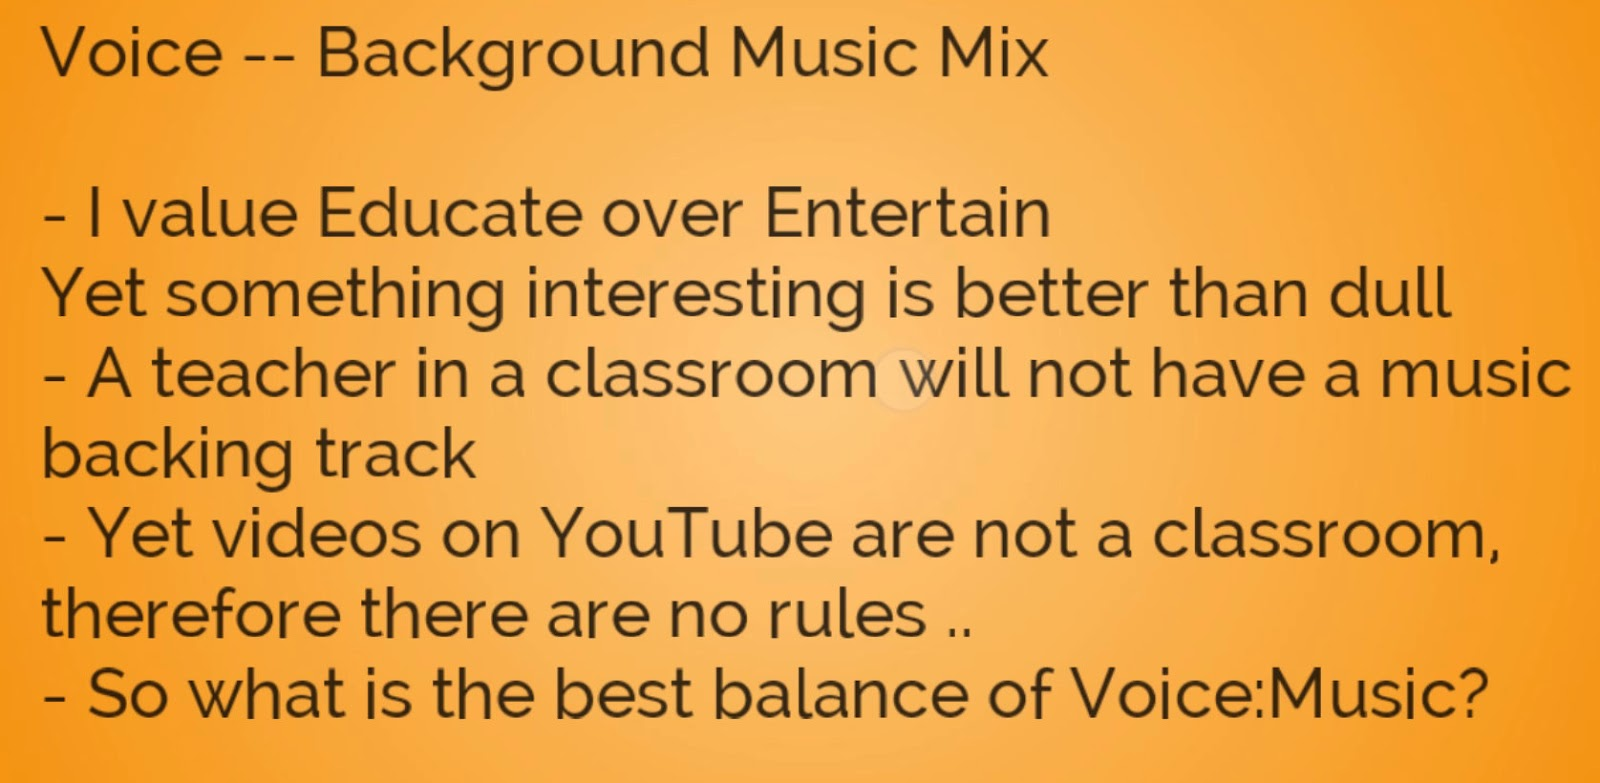 mike downes - we make videos to help people learn: Mixing